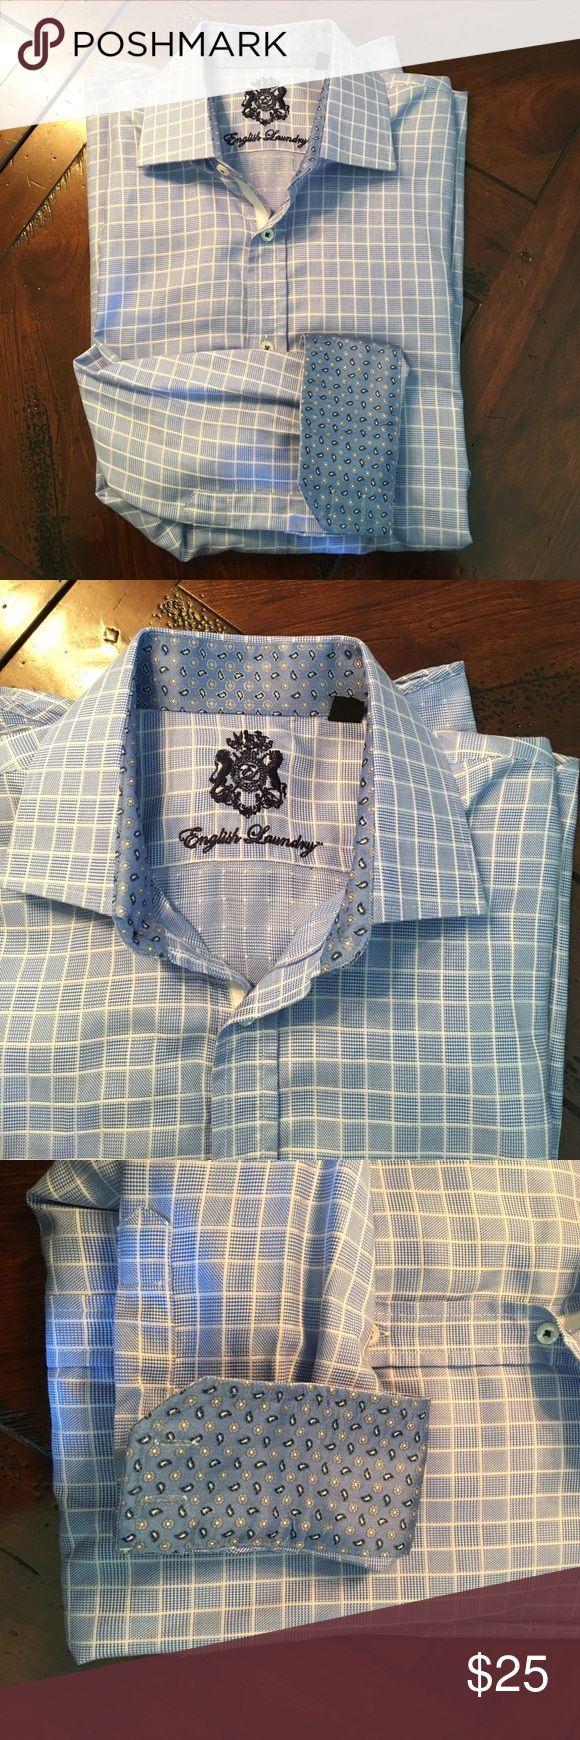 English Laundry dress shirt Window box pattern with cuff and collar accents. Brand new without tags. 16.5x32/33 English Laundry Shirts Dress Shirts